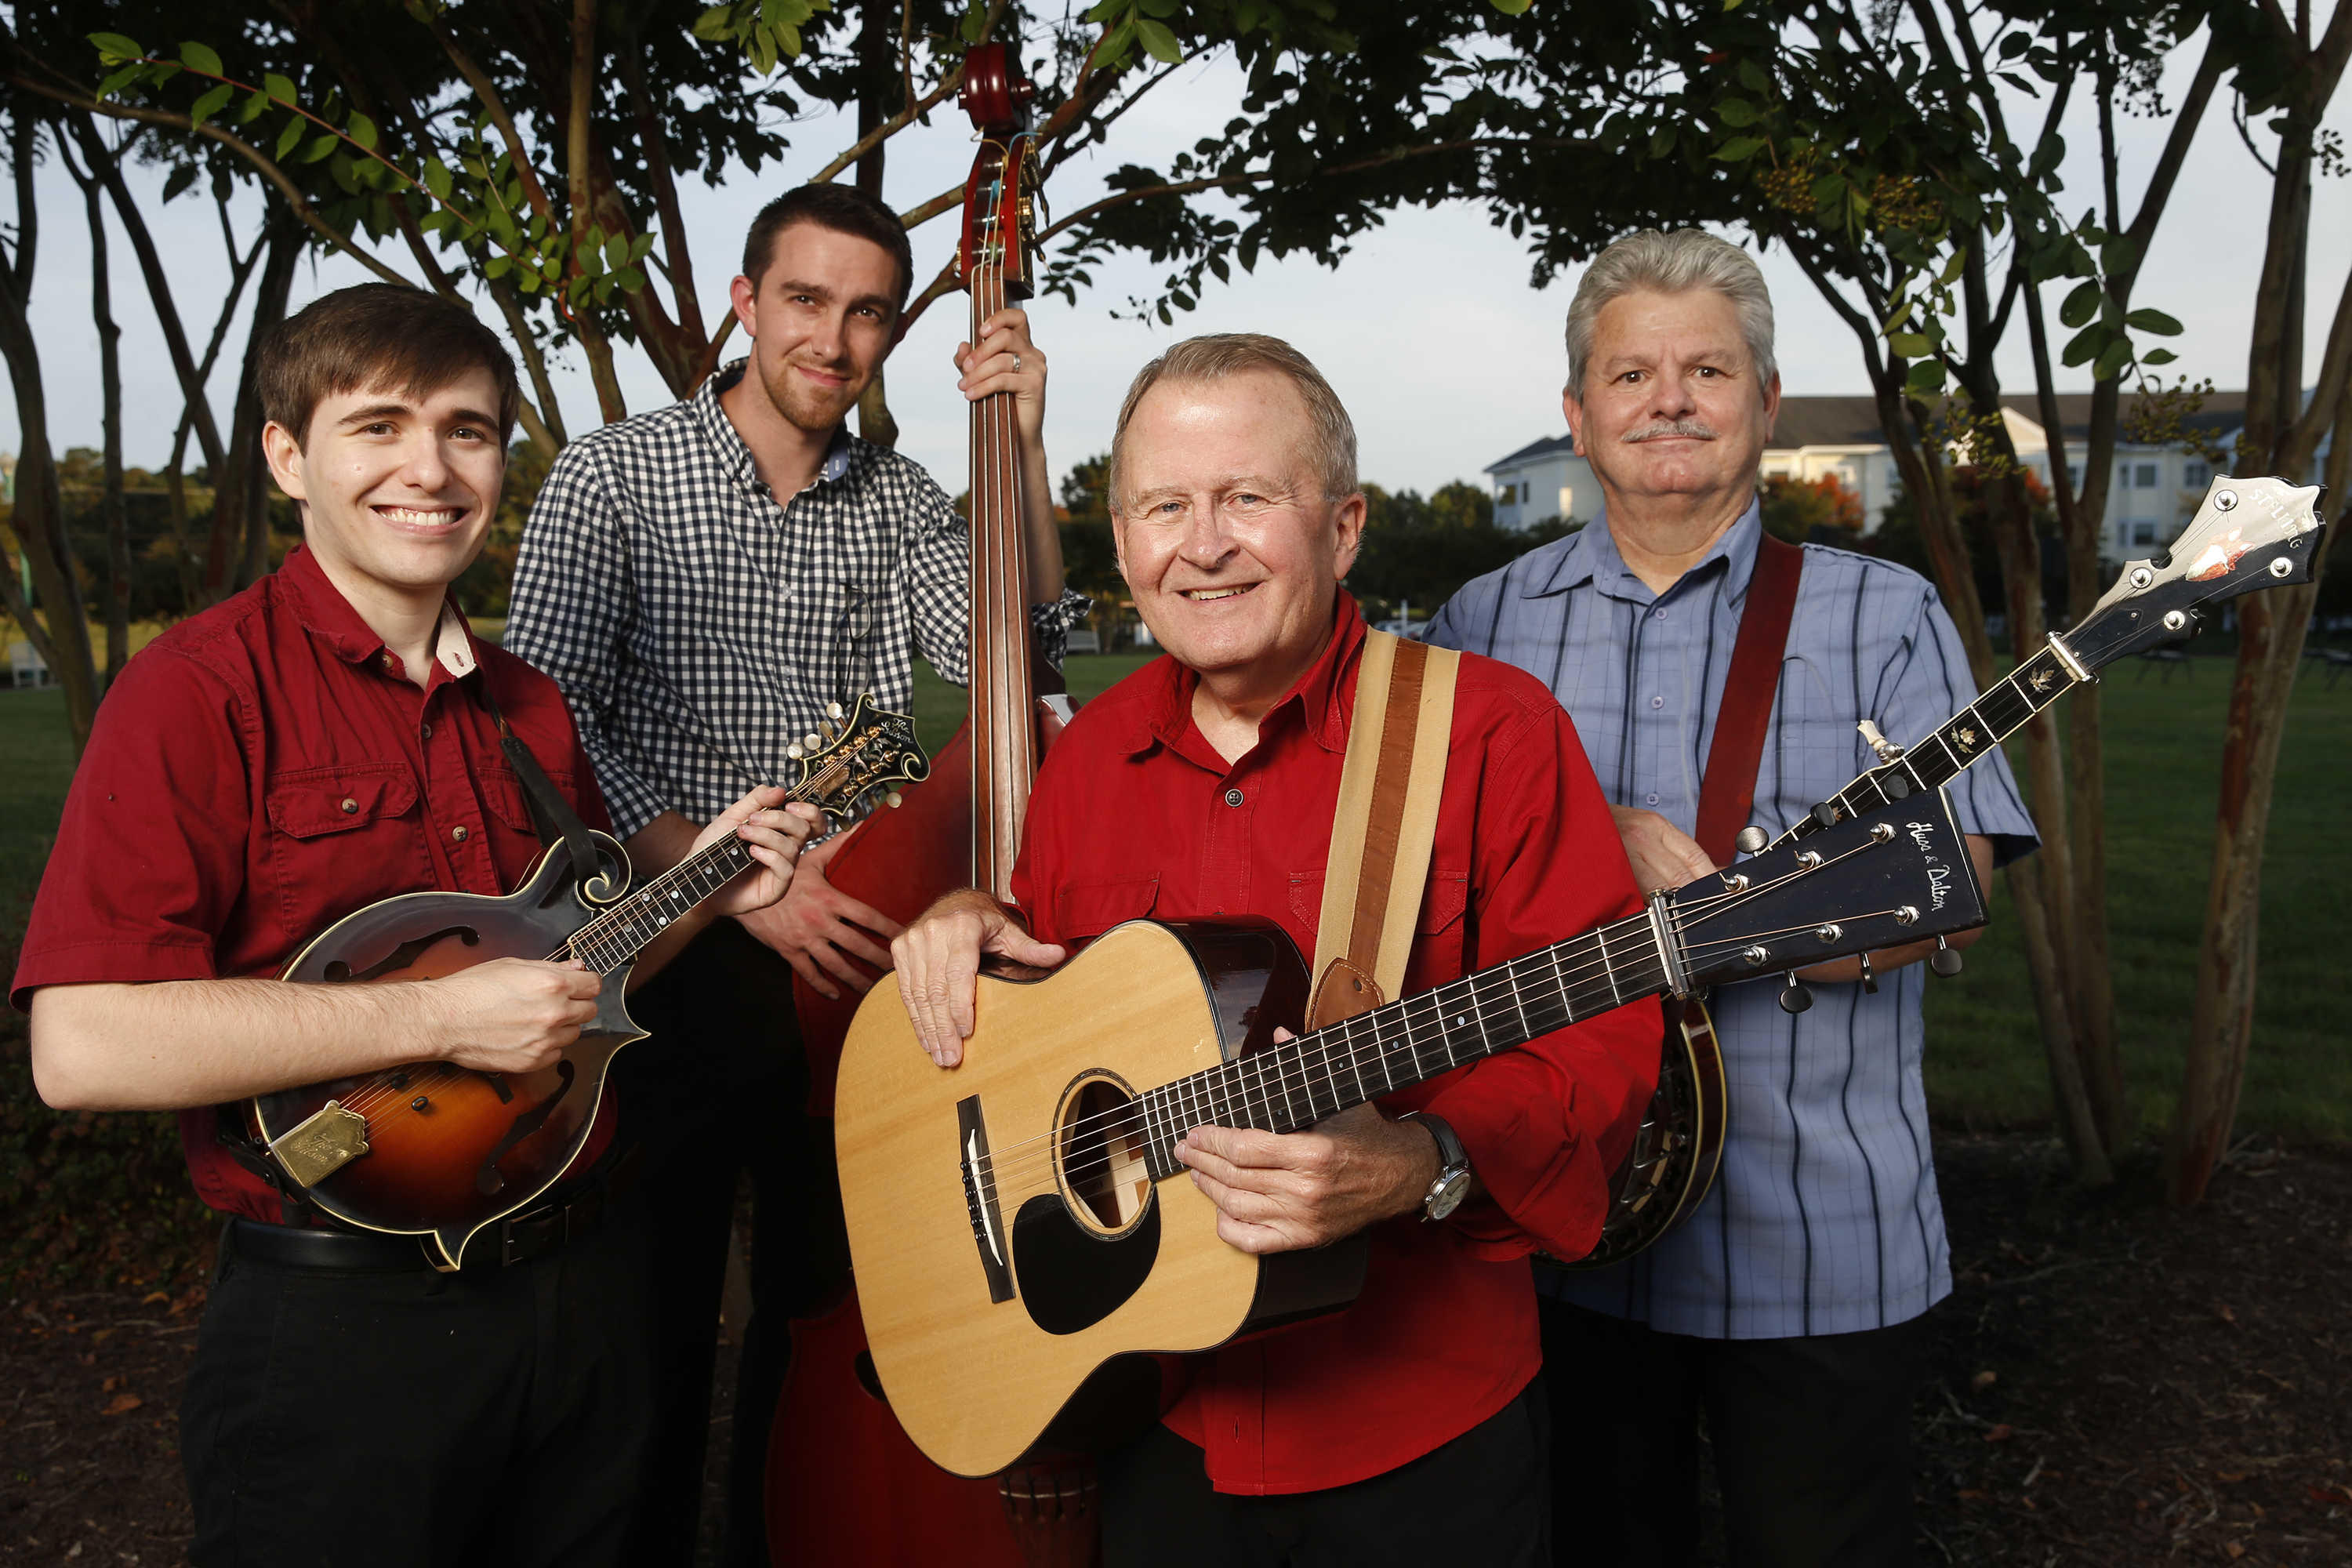 Richmond's Finest with Commonwealth Bluegrass Band and the Richmond Symphony